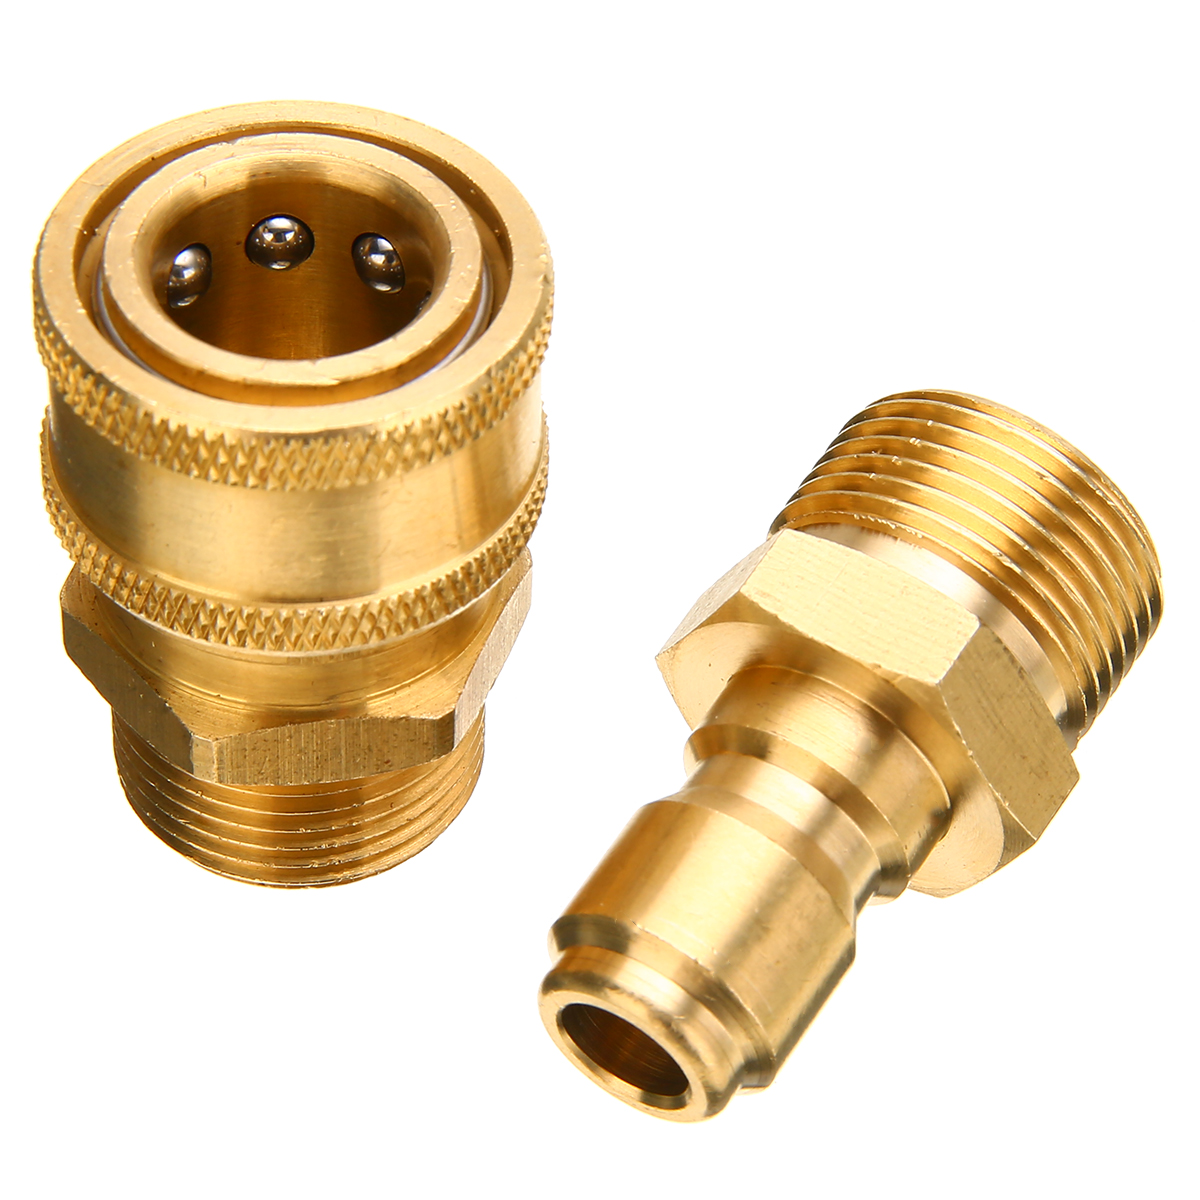 high pressure washer foam lance male adapter connect 14mm m22 x 1 4 1 Pair Brass Quick Couplers M22 Quick Release Pressure Washer Adapter Connector Coupling 14.8MM High Quality